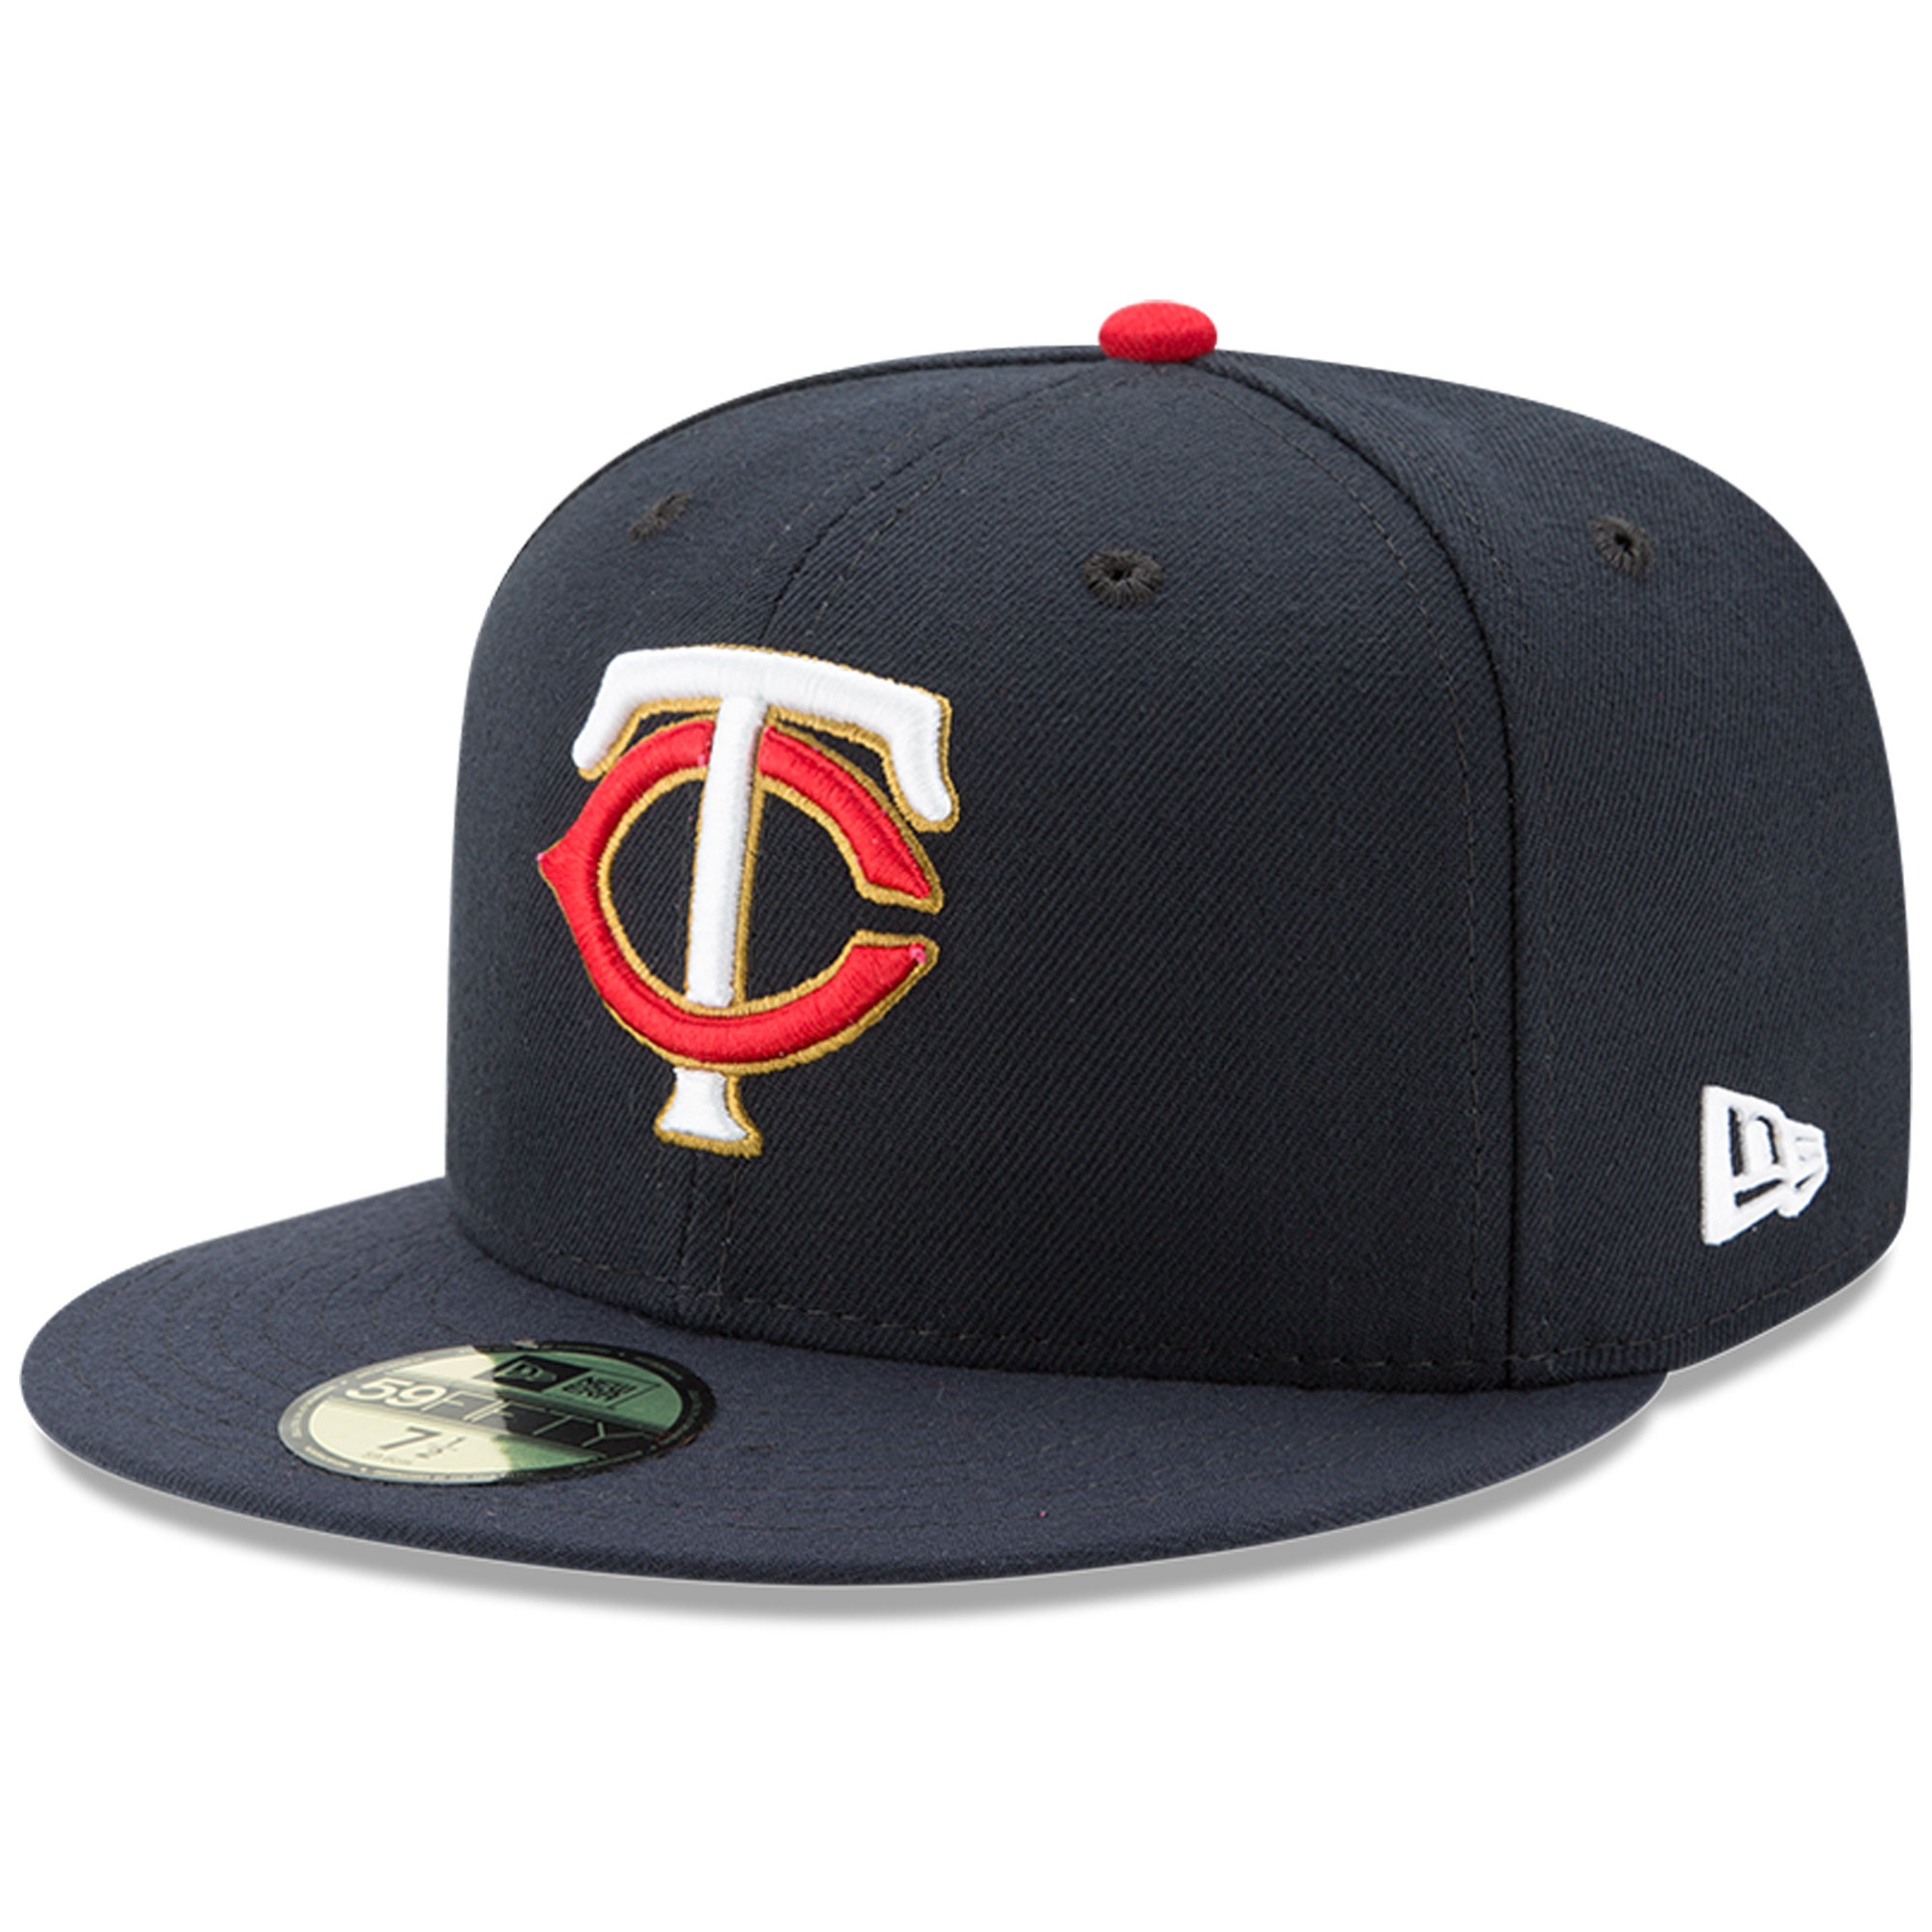 Minnesota Twins New Era Youth Authentic Collection On-Field Alternate 59FIFTY Fitted Hat - Navy